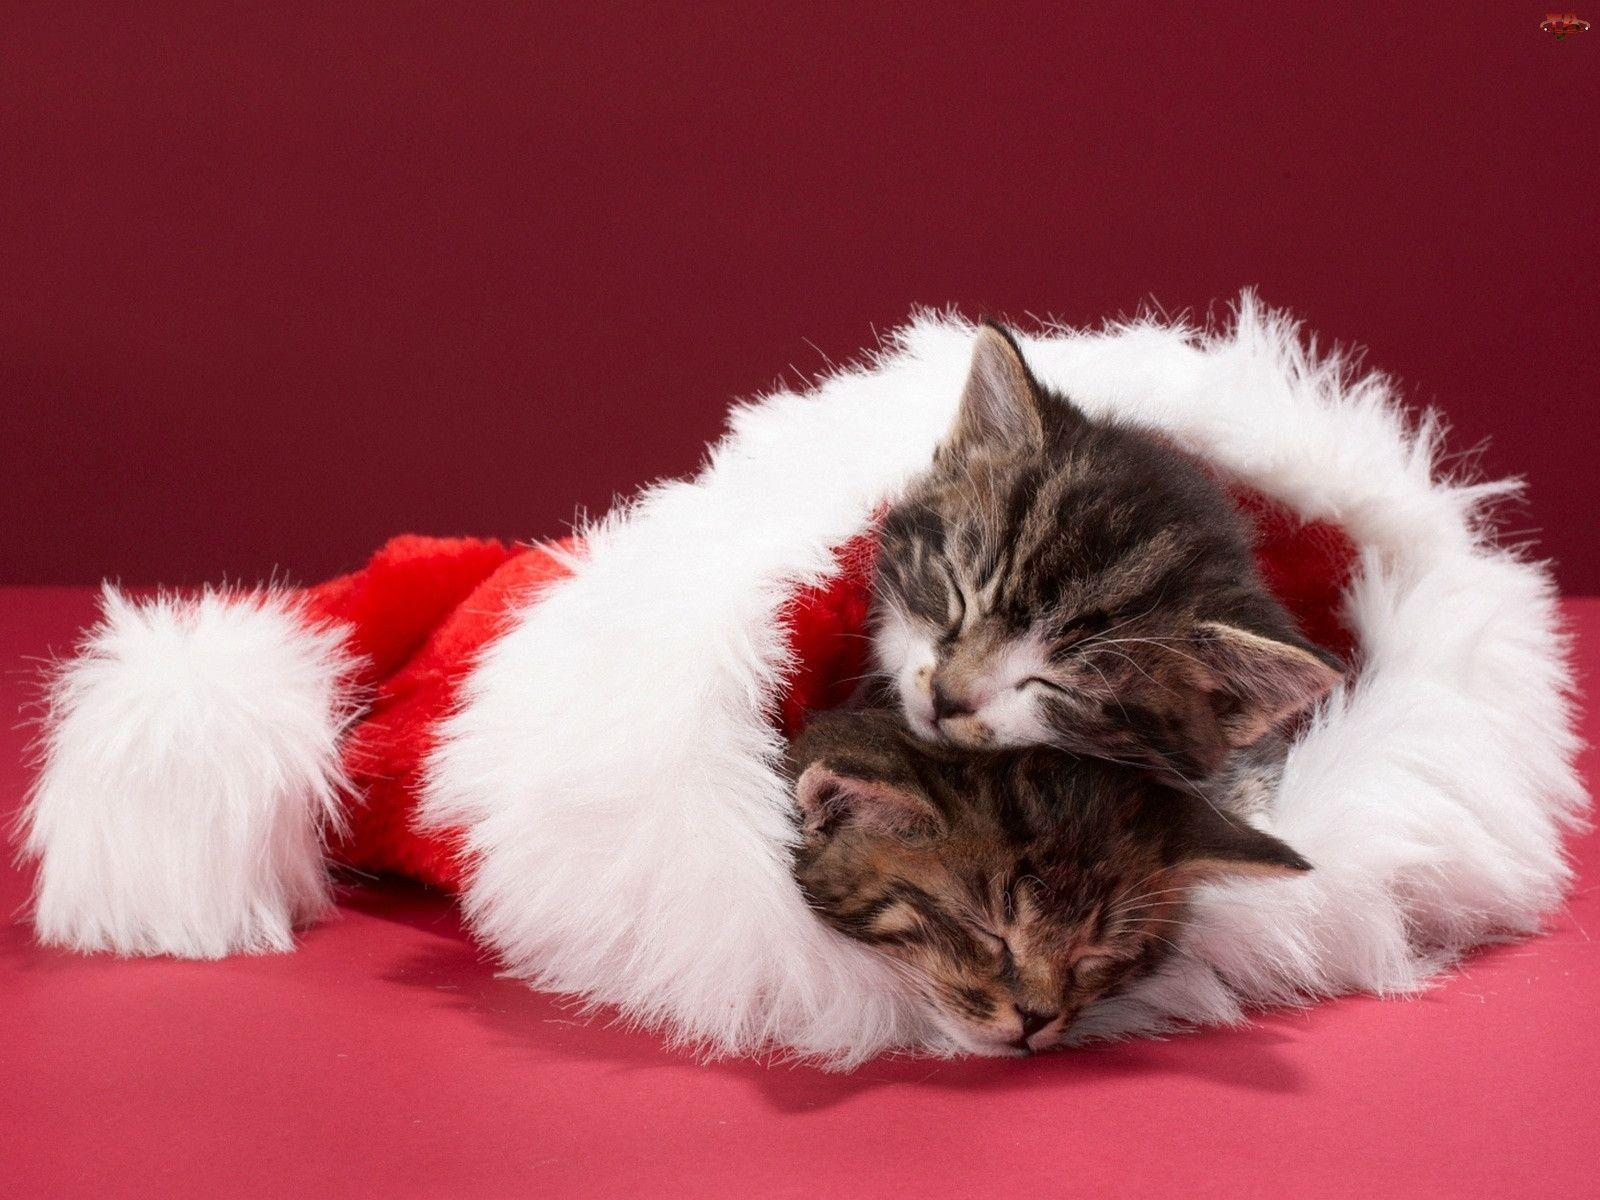 Christmas Kittens. - Cats Wallpaper (36711904) - Fanpop